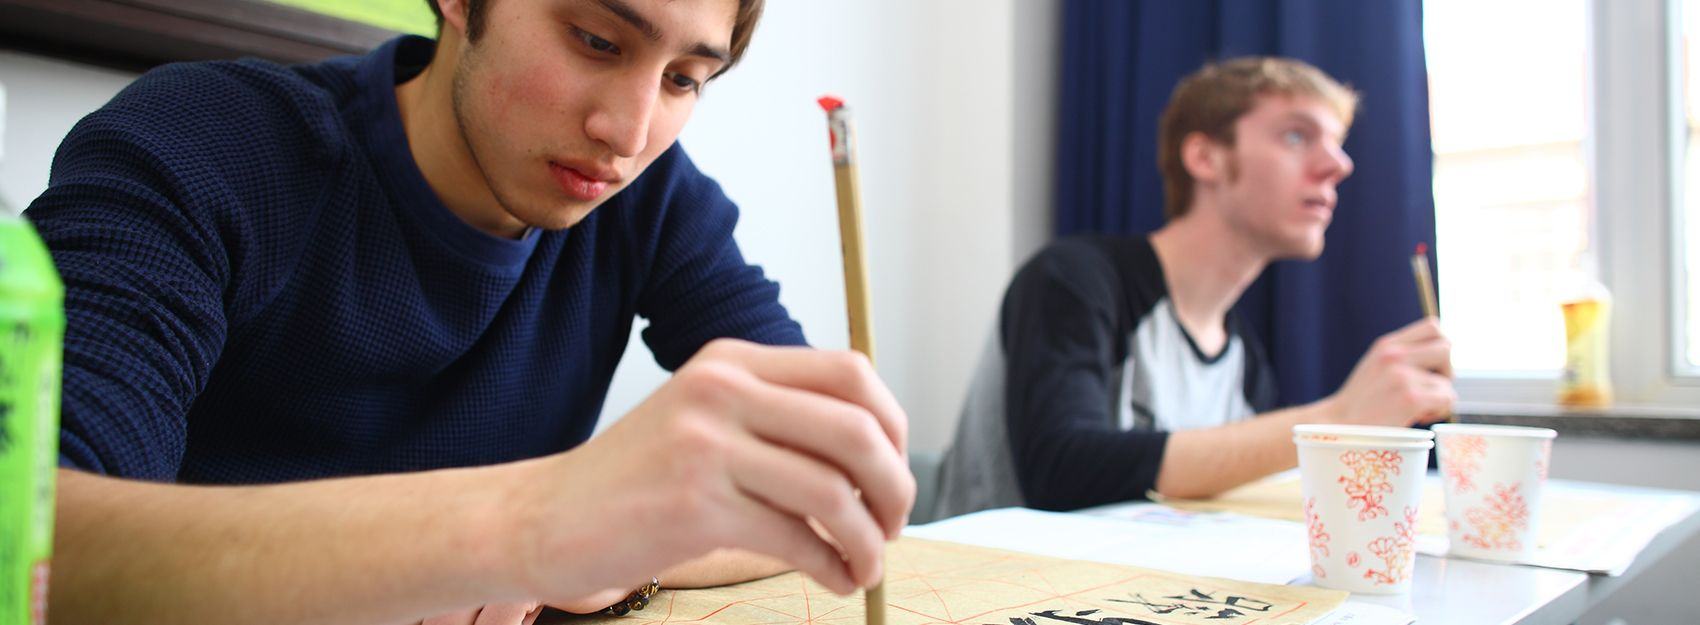 A Shanghai study abroad student practices calligraphy in class